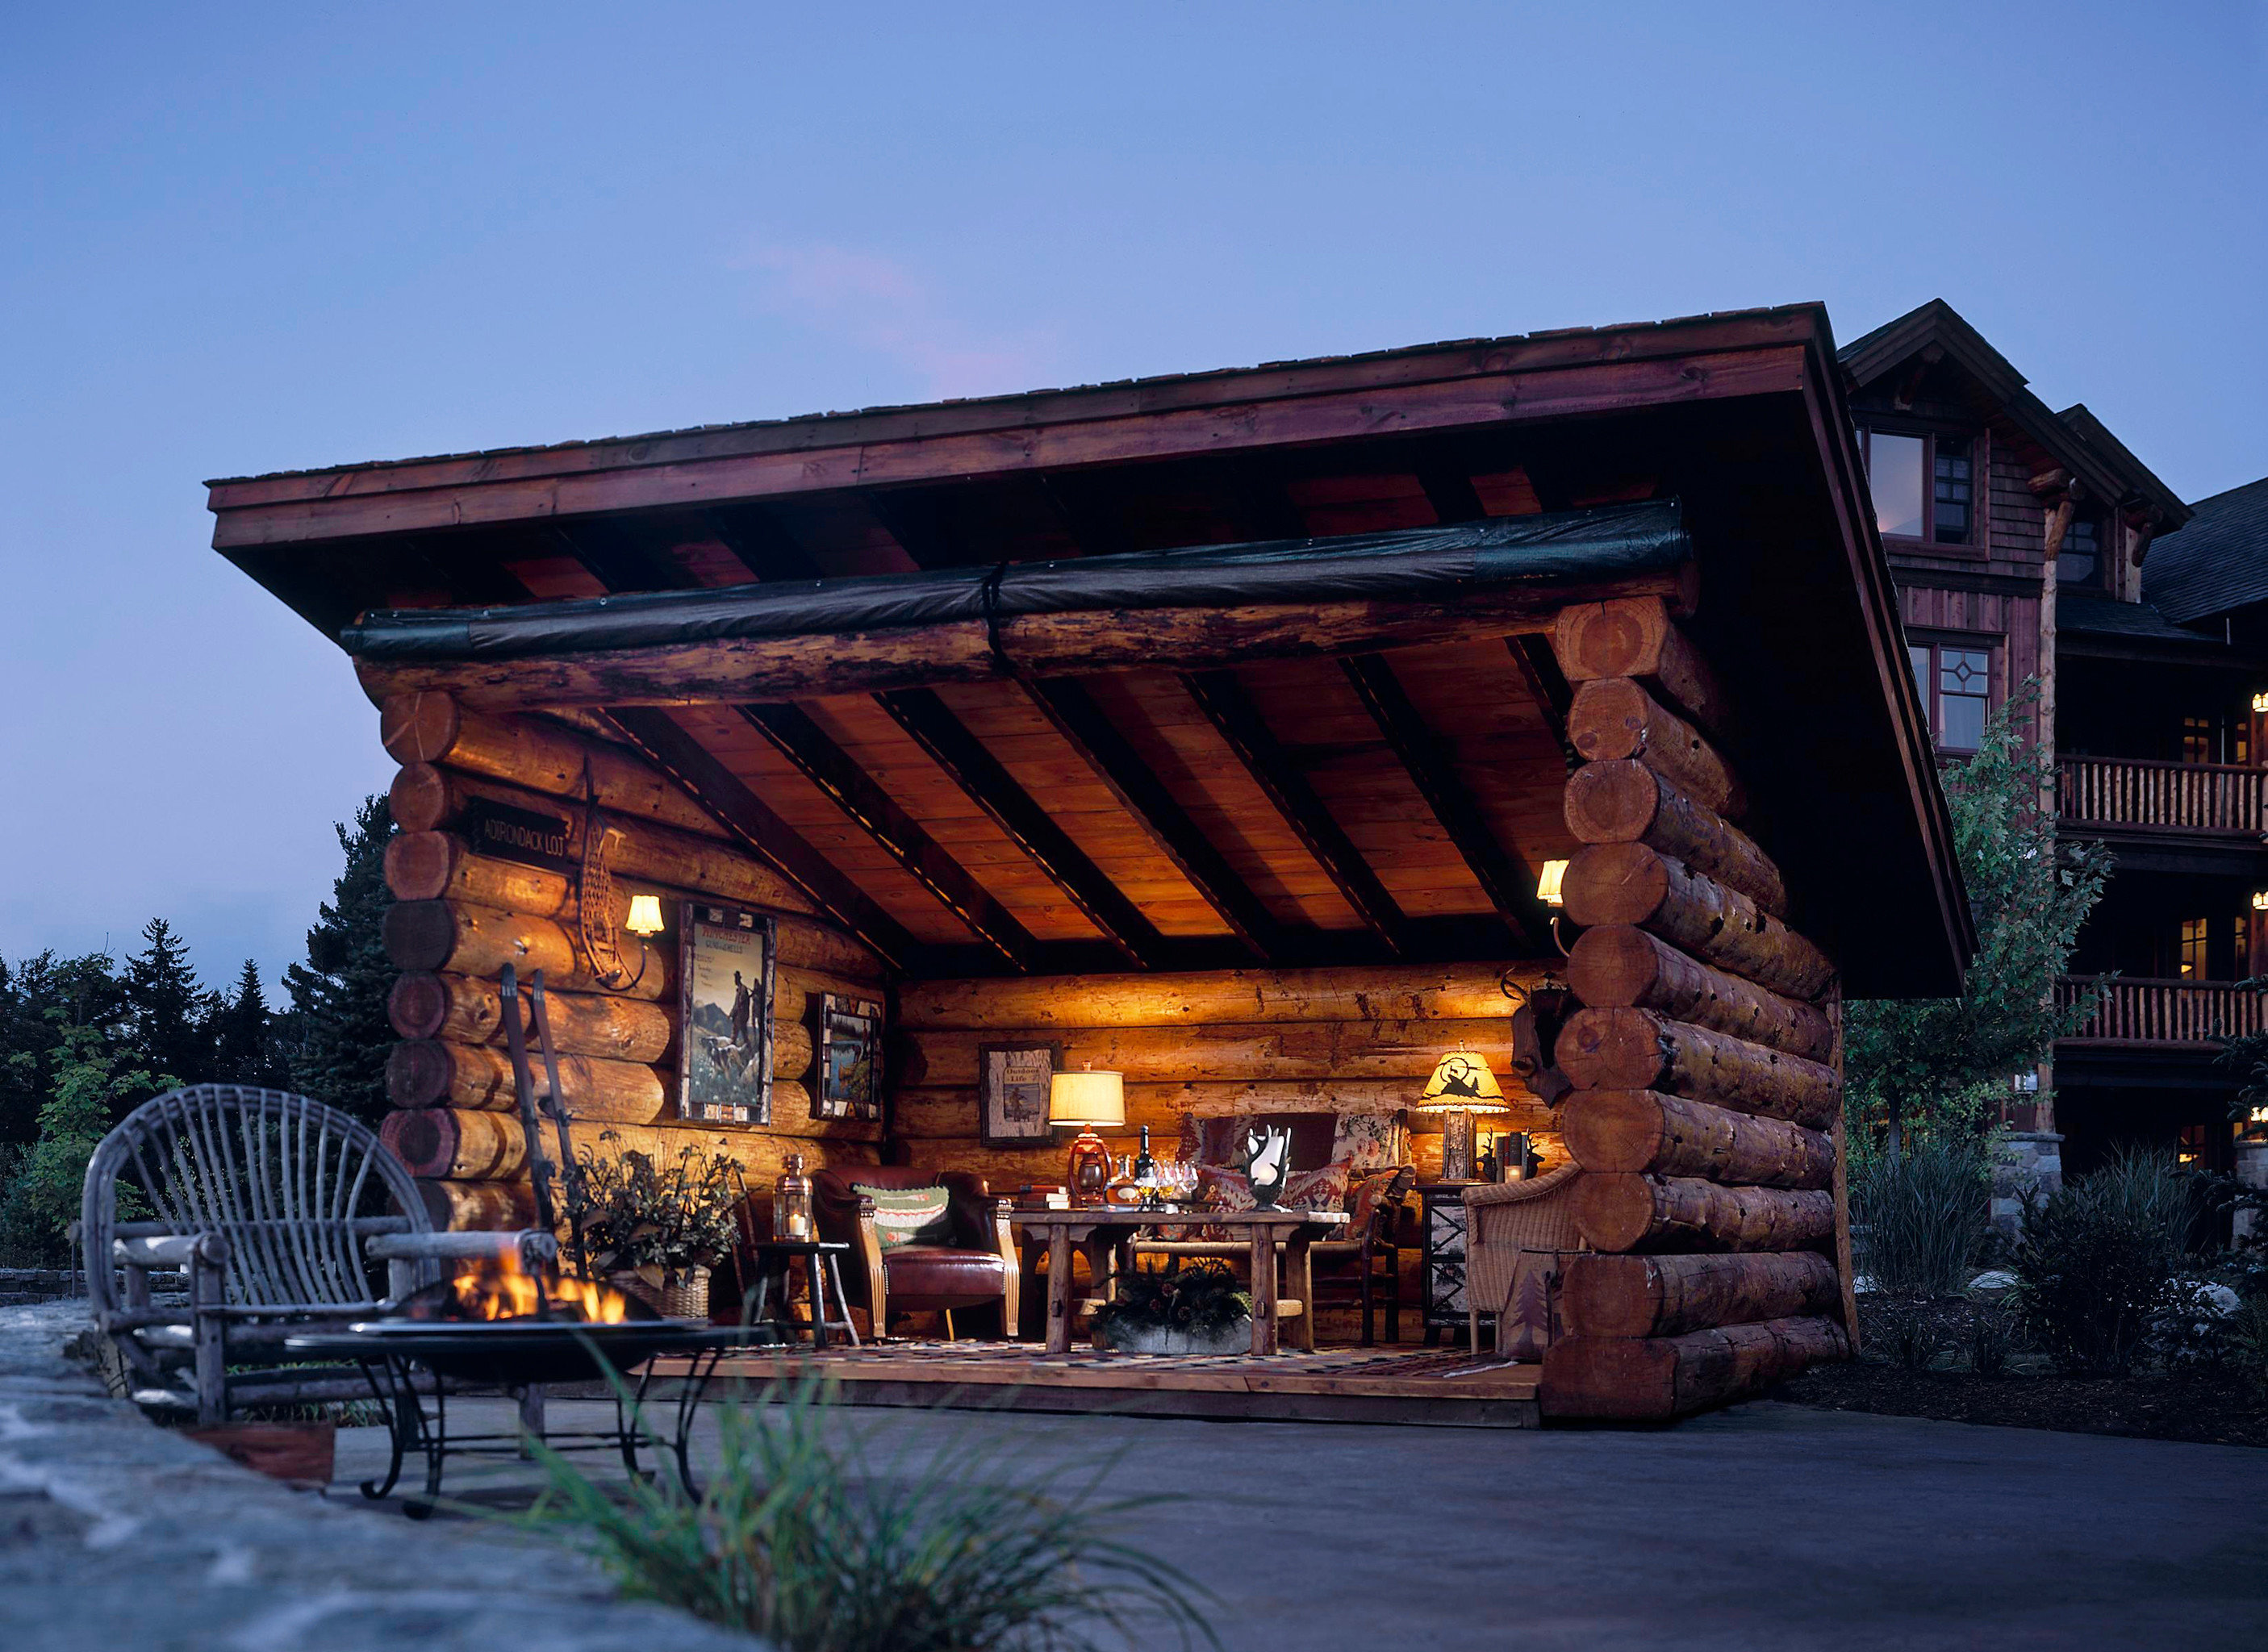 Architecture Buildings Design Exterior Grounds Hotels Lodge Mountains New York Romantic Hotels building outdoor sky house log cabin home estate wood outdoor structure